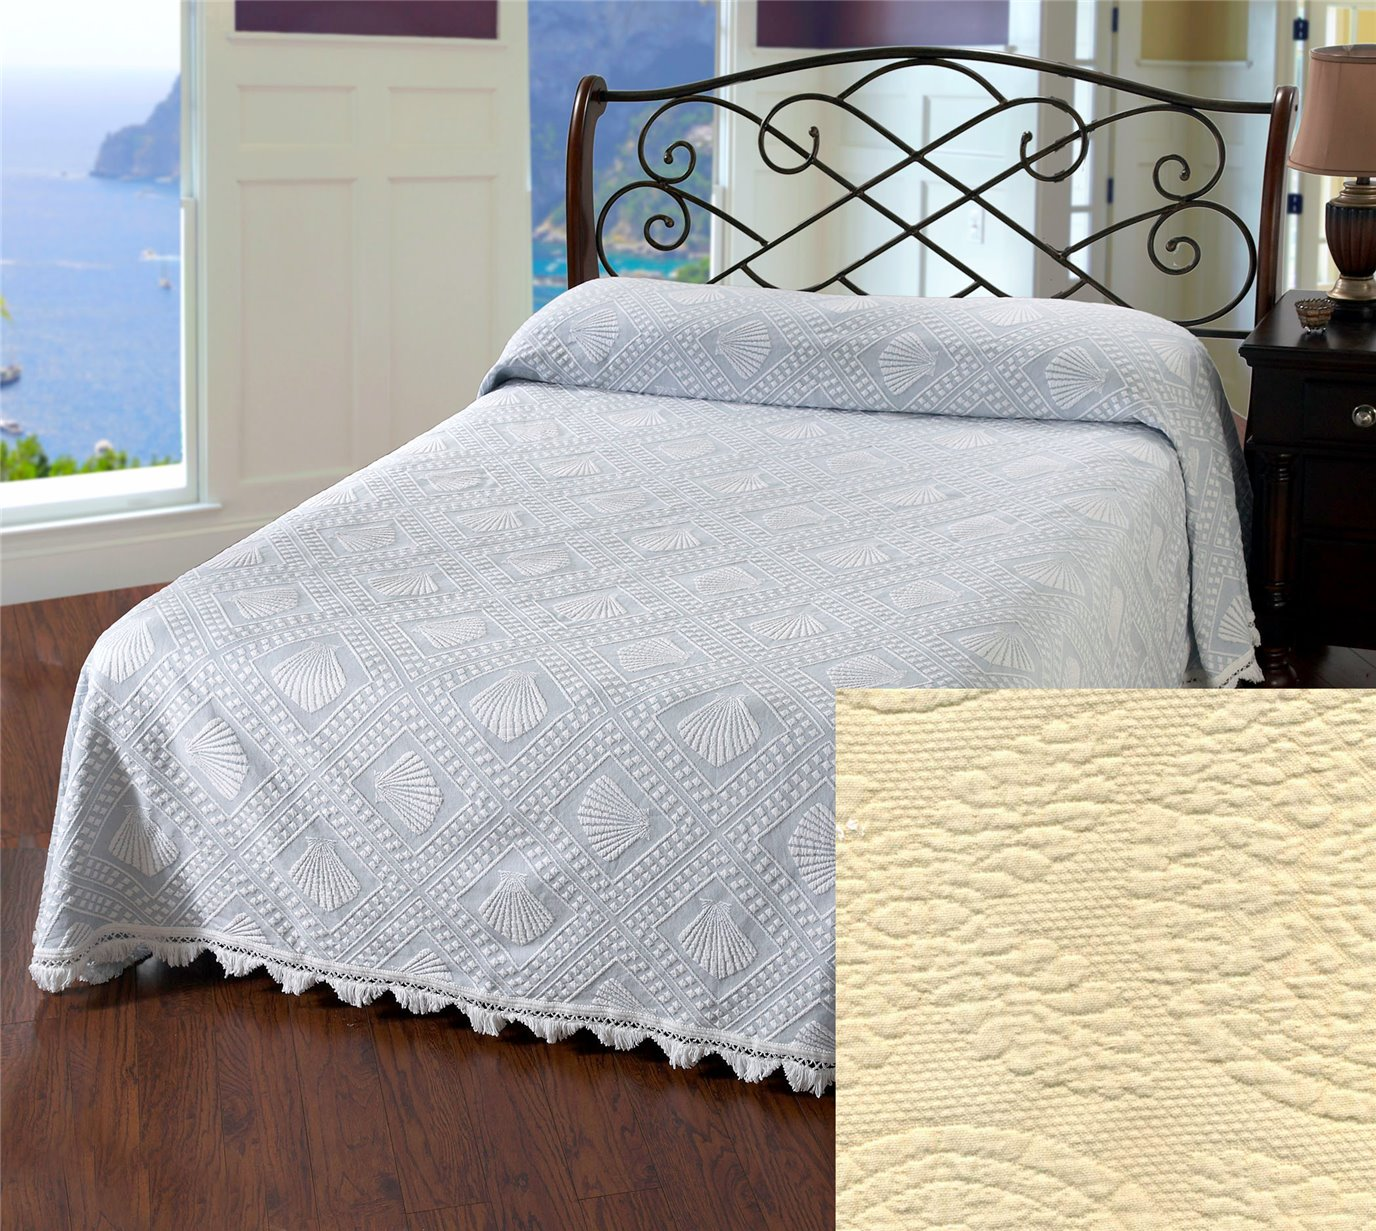 Cape Cod Queen Antique Bedspread